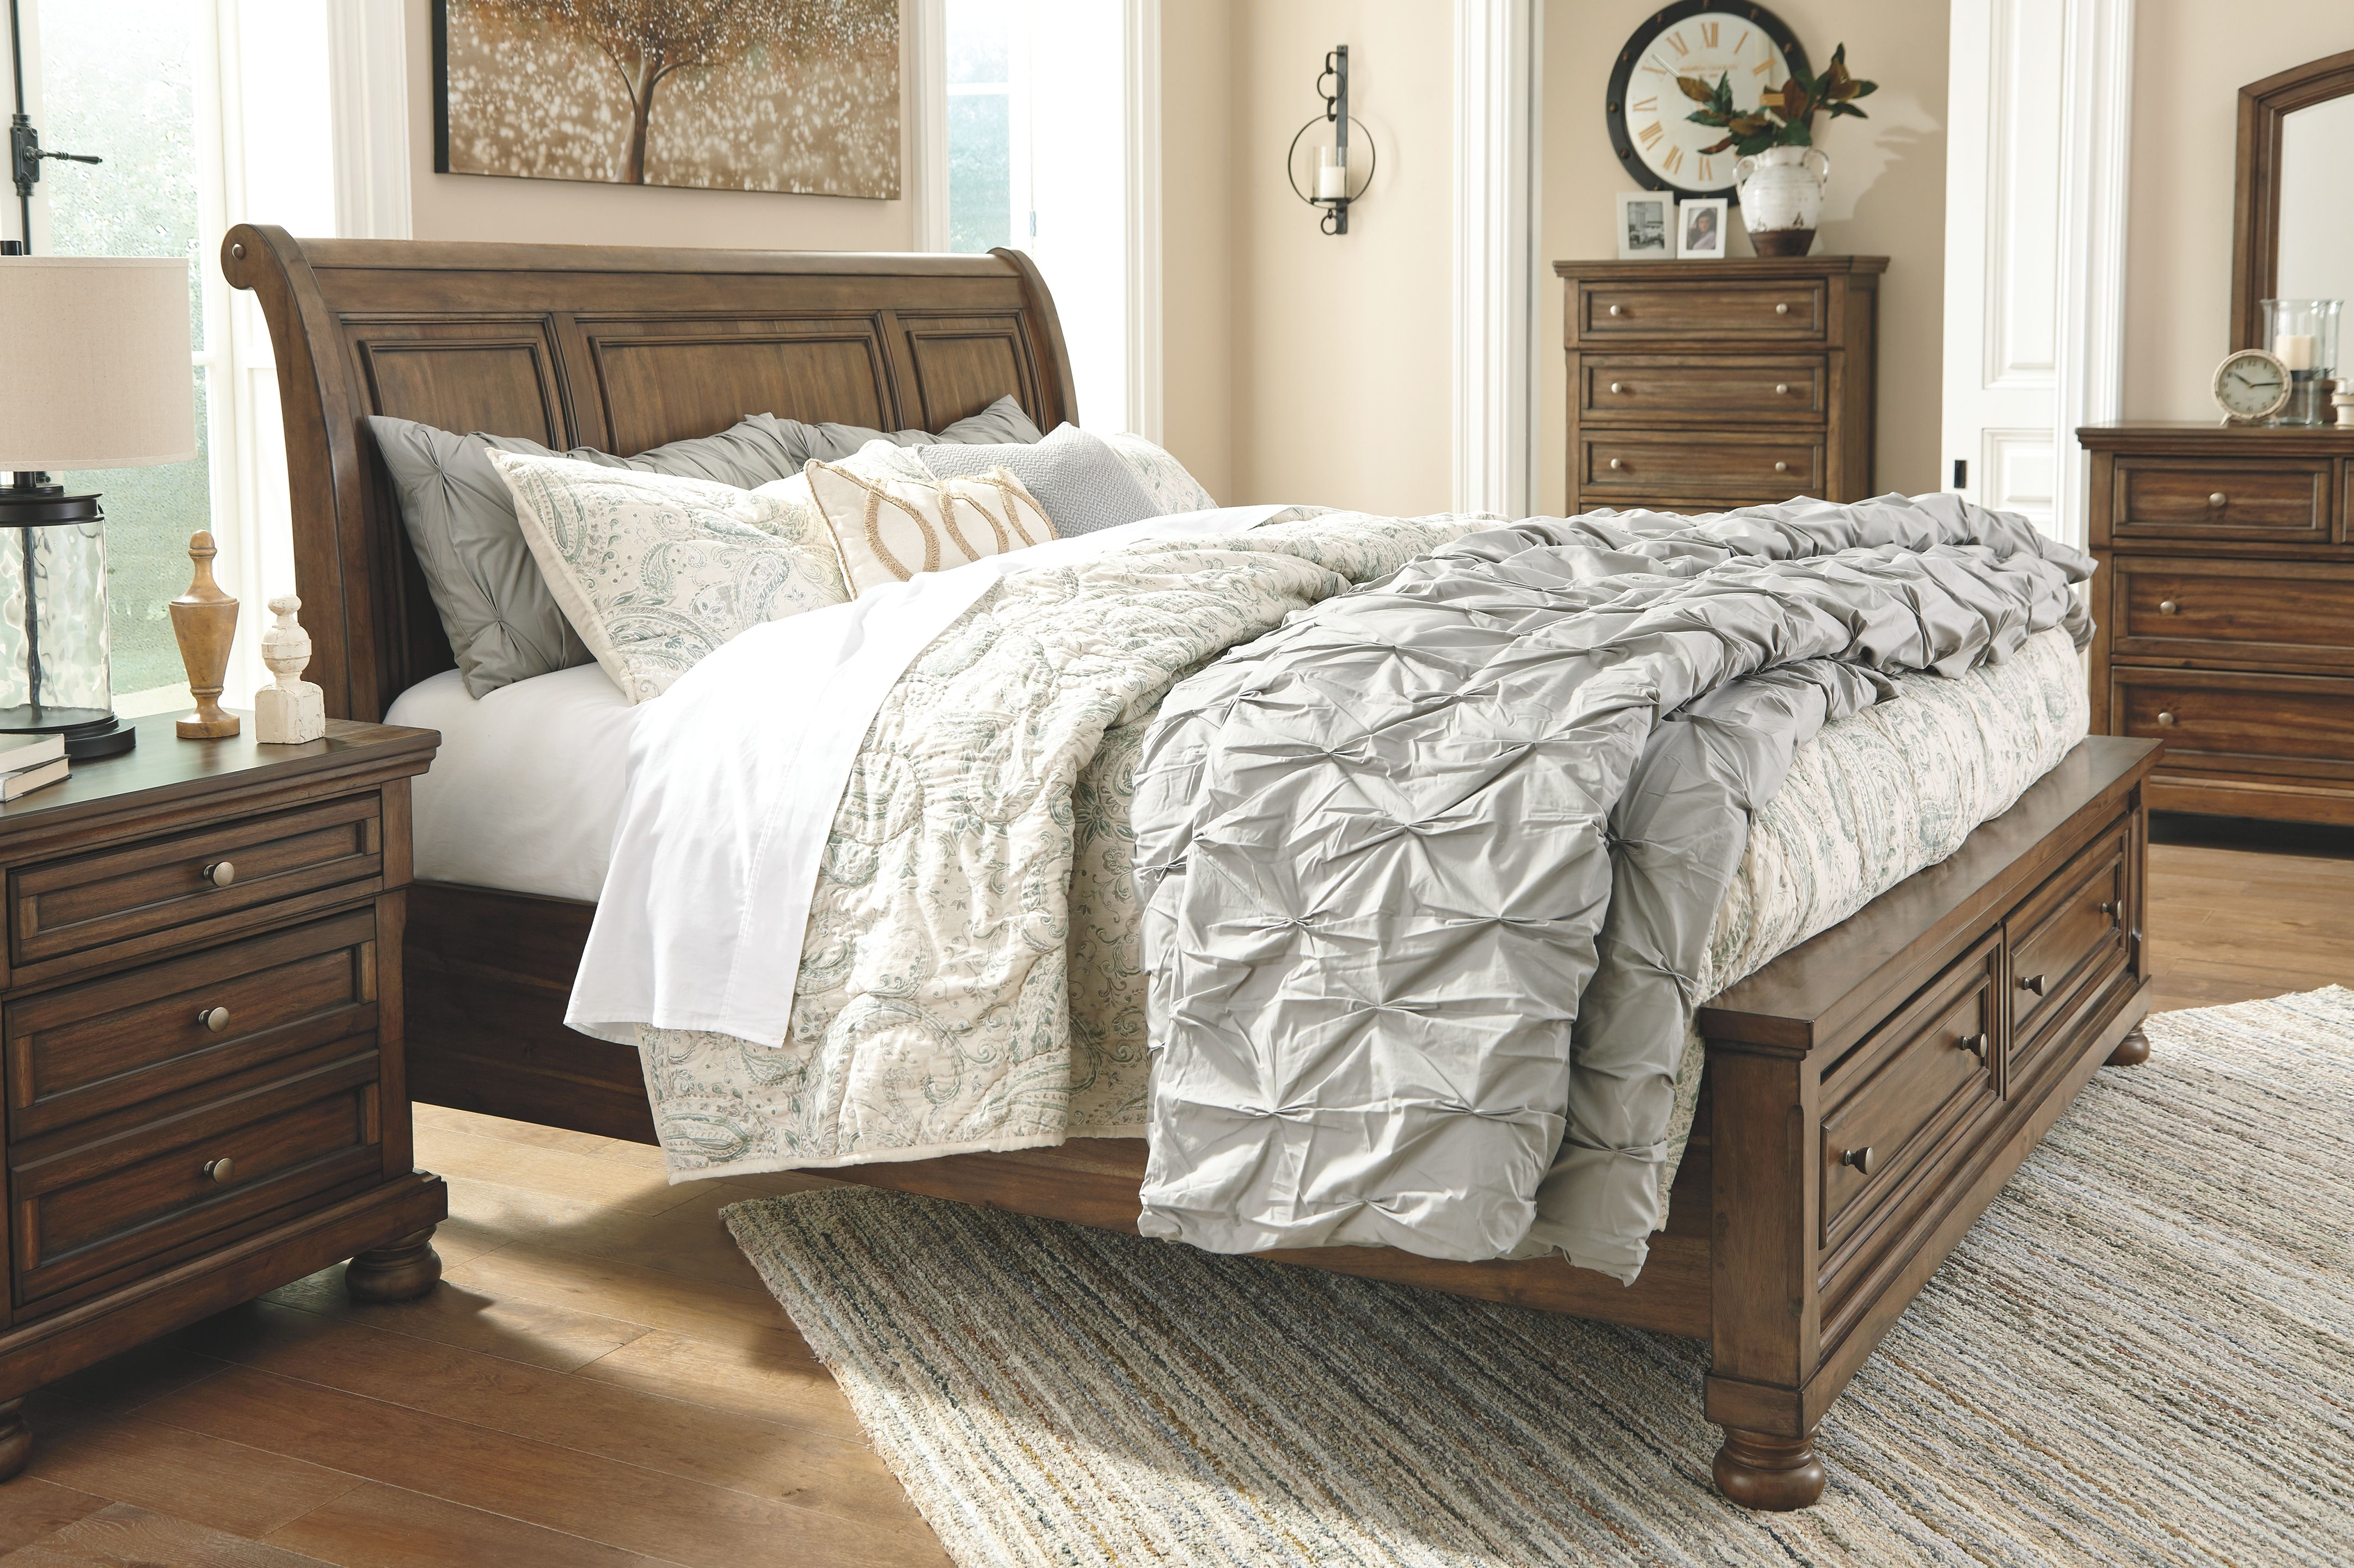 Flynnter King Sleigh Bed with 2 Storage Drawers, Medium